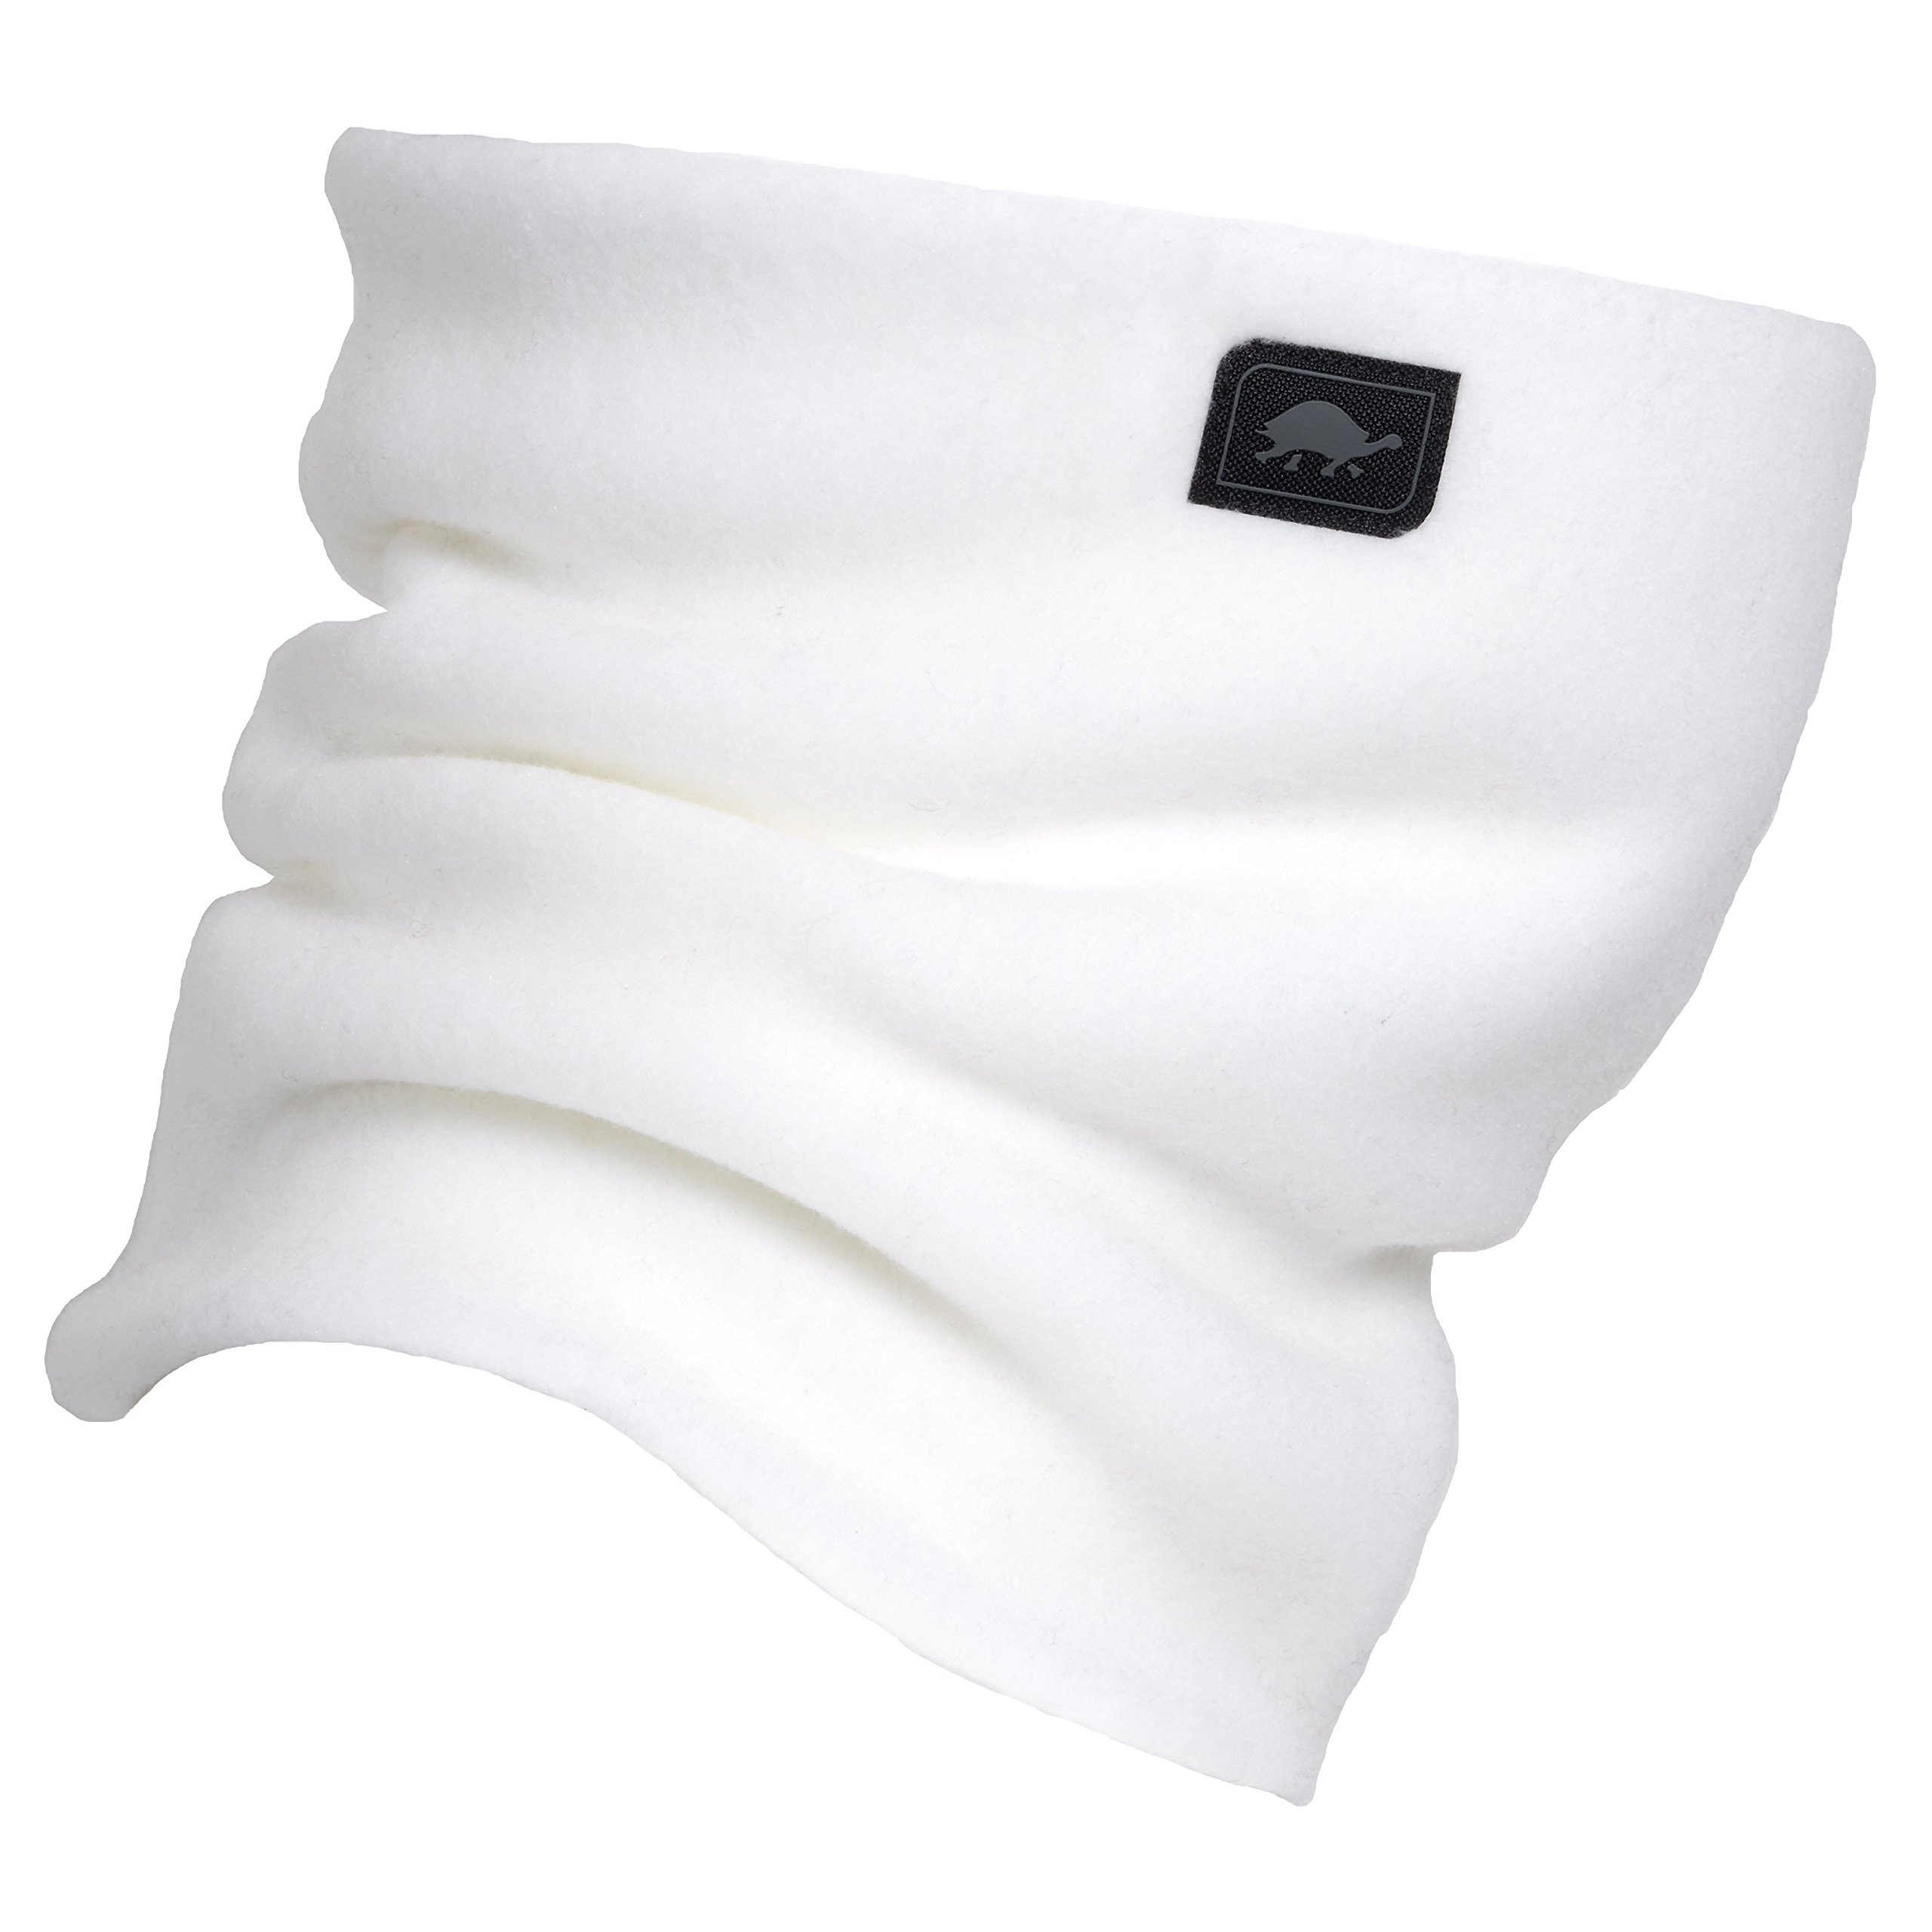 Turtle Fur The Turtle's Neck Neckwarmer, White by Turtle Fur